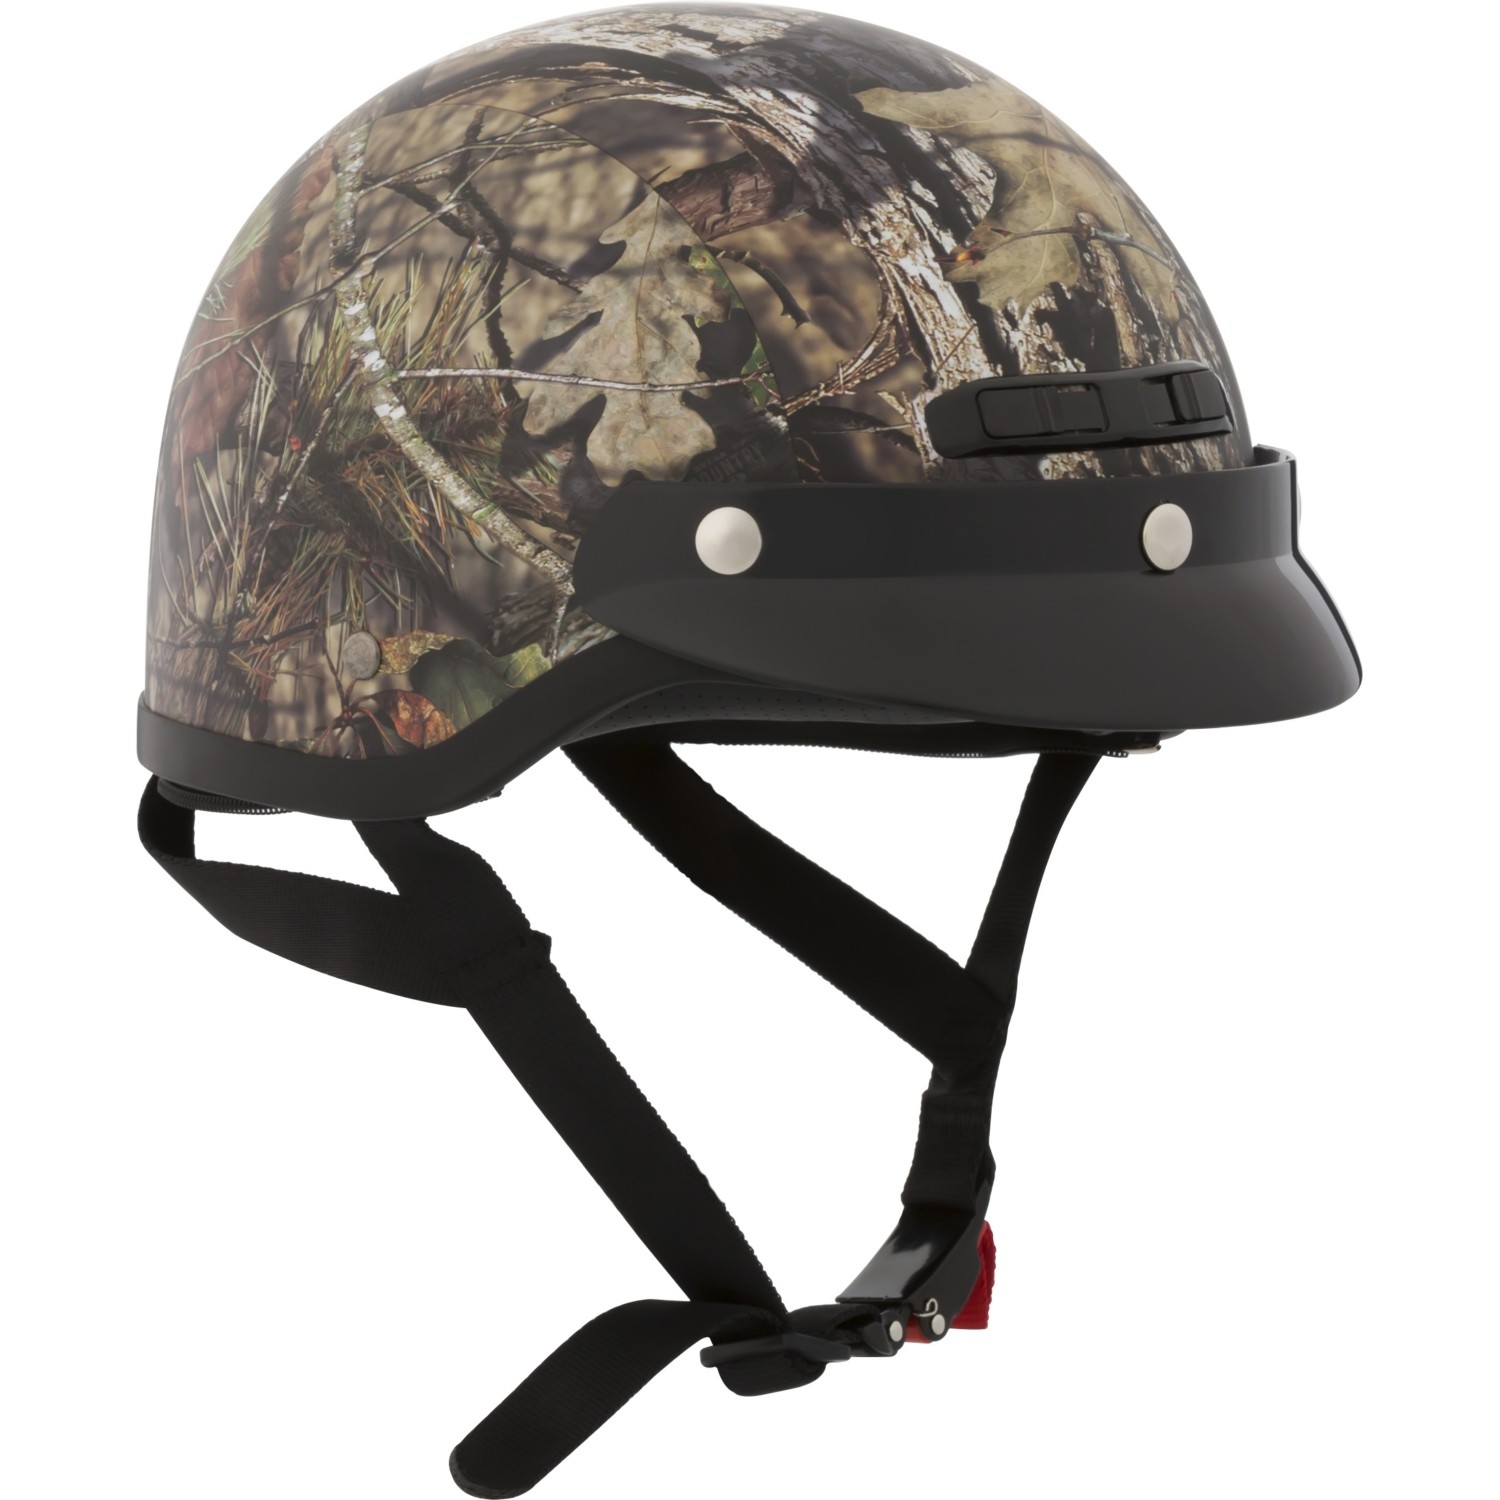 Hunt CKX VG500 Half Helmet Part# 507725 XL